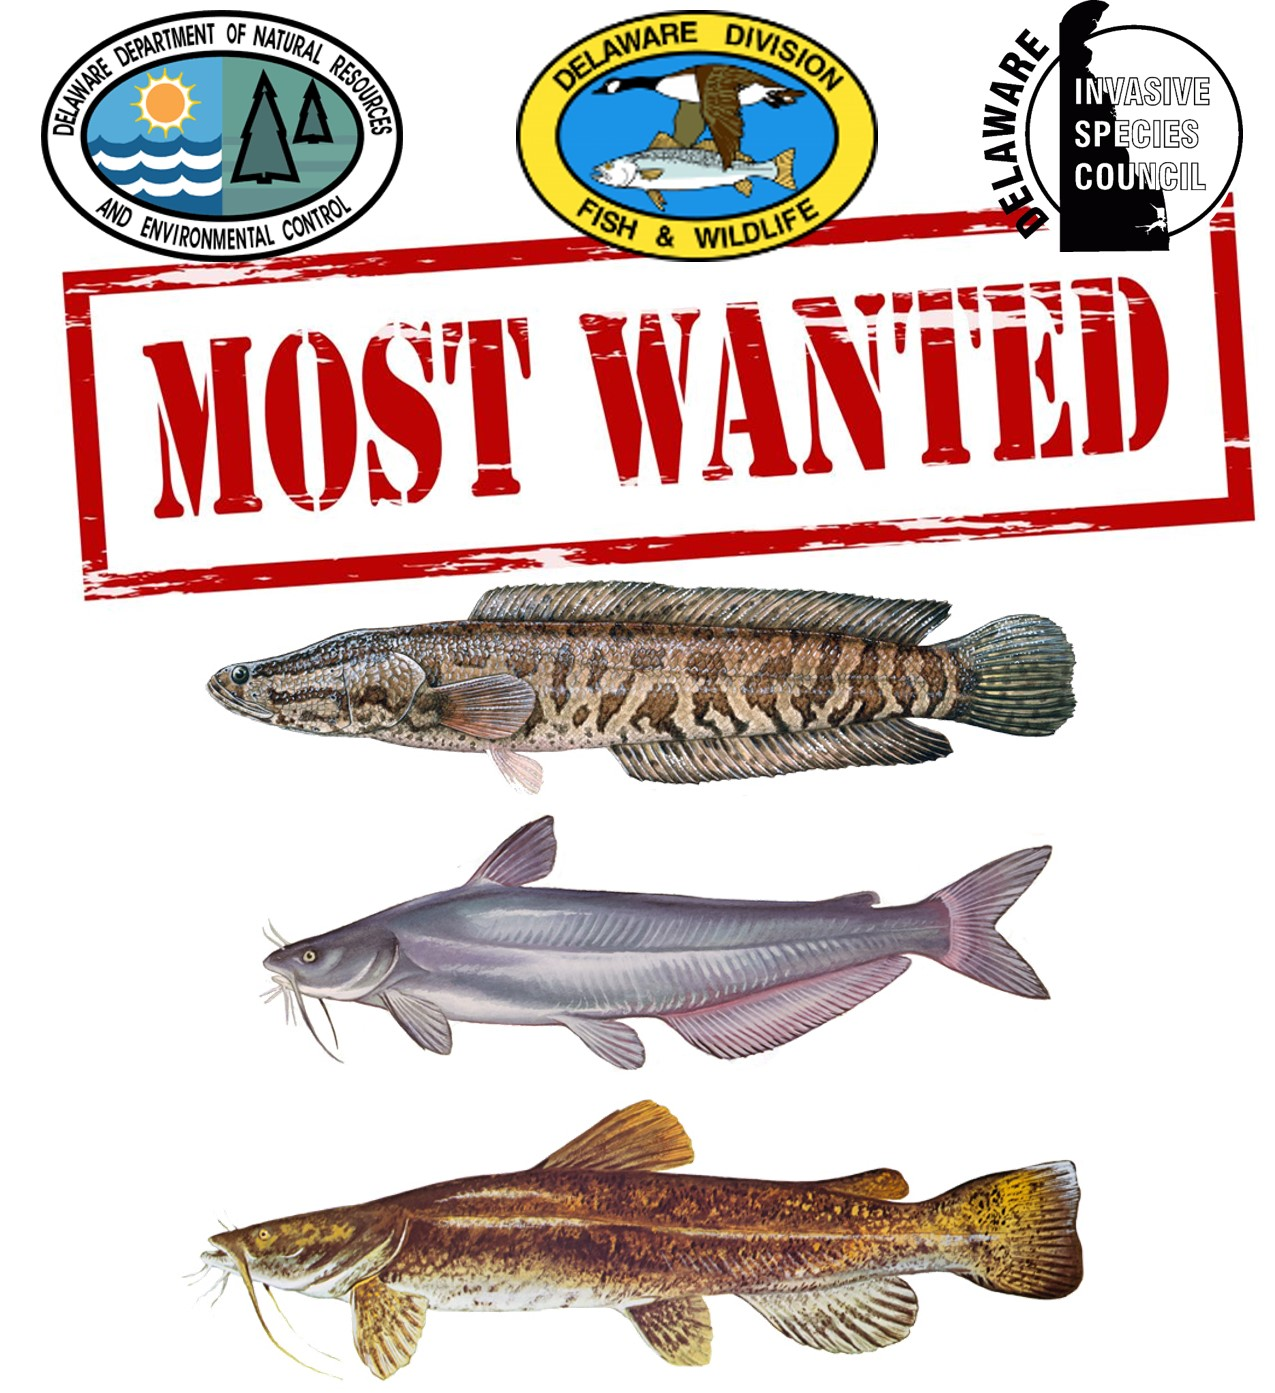 Most Wanted: Invasive Aquatic Species